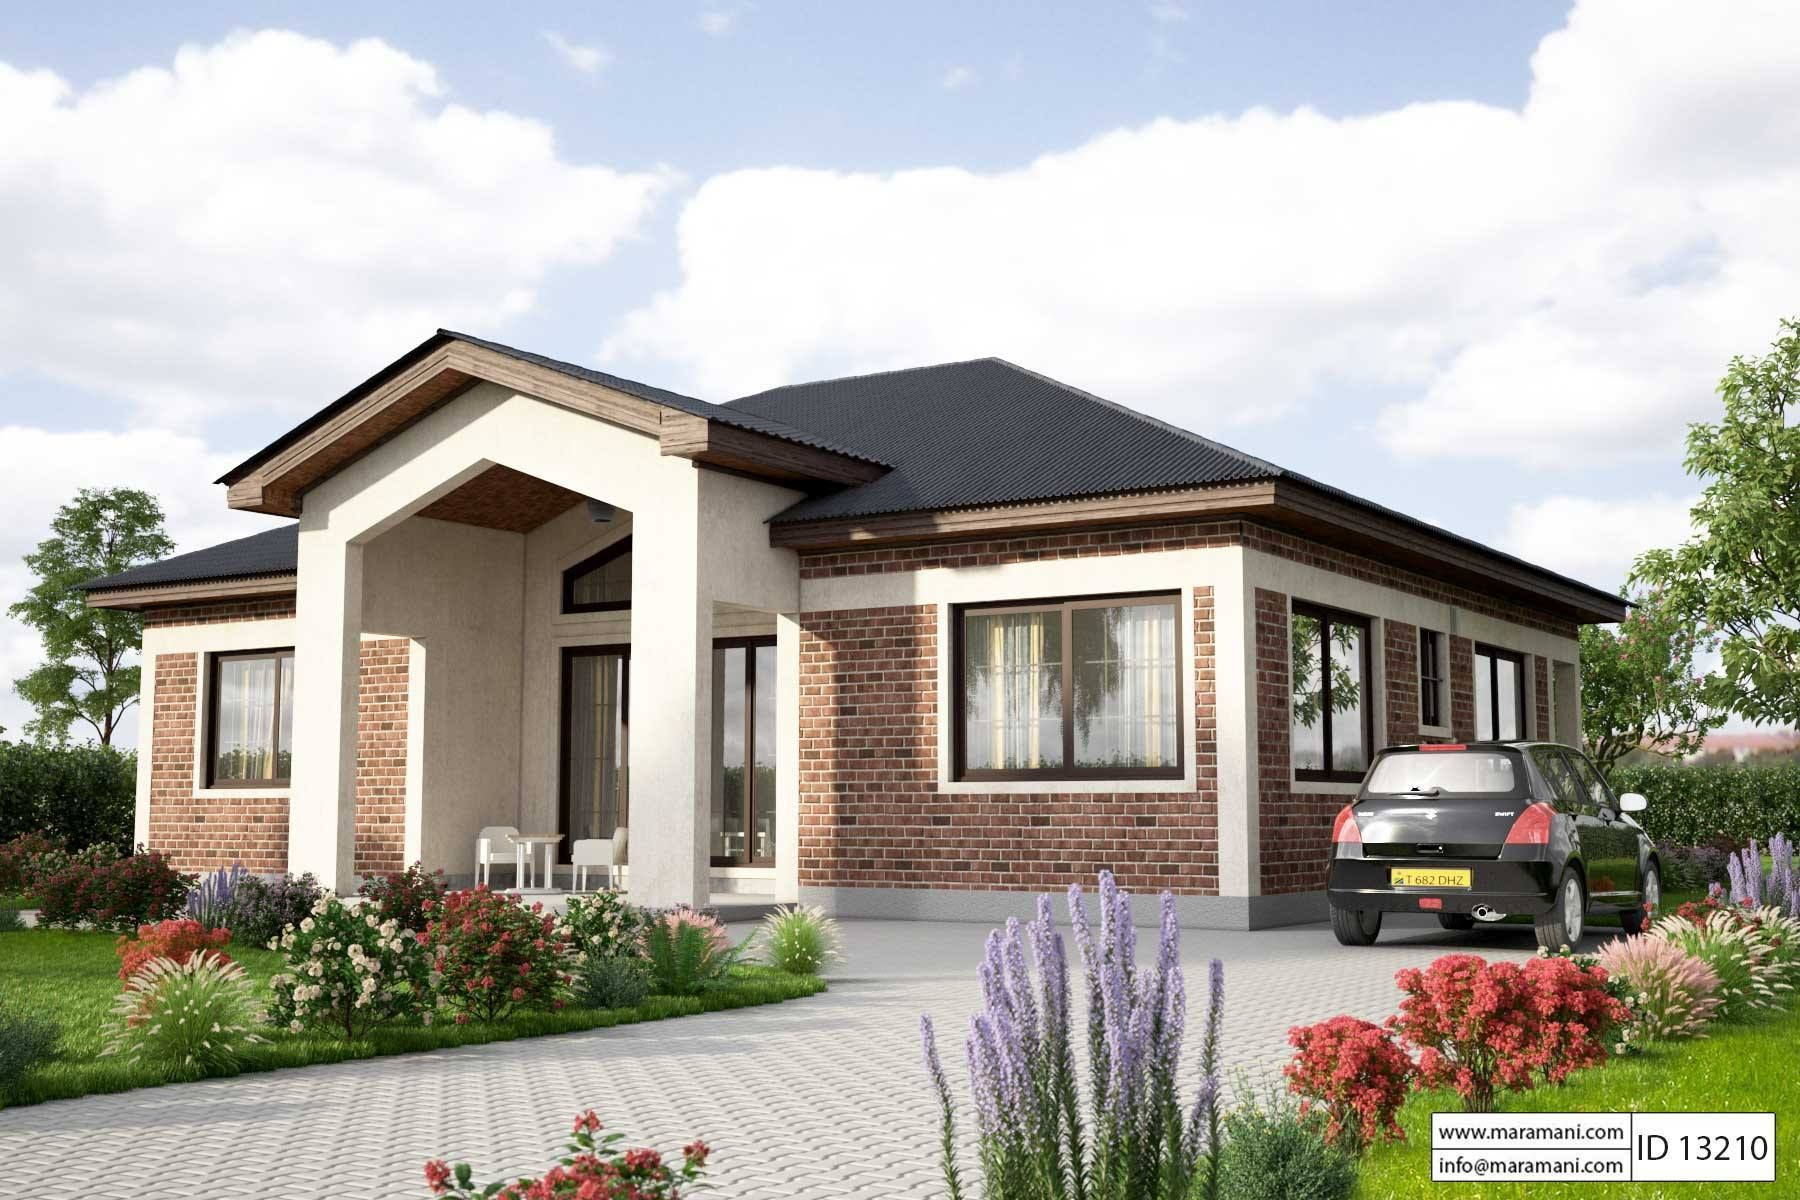 Simple House Design - ID 13210 - House Plans (With images ...